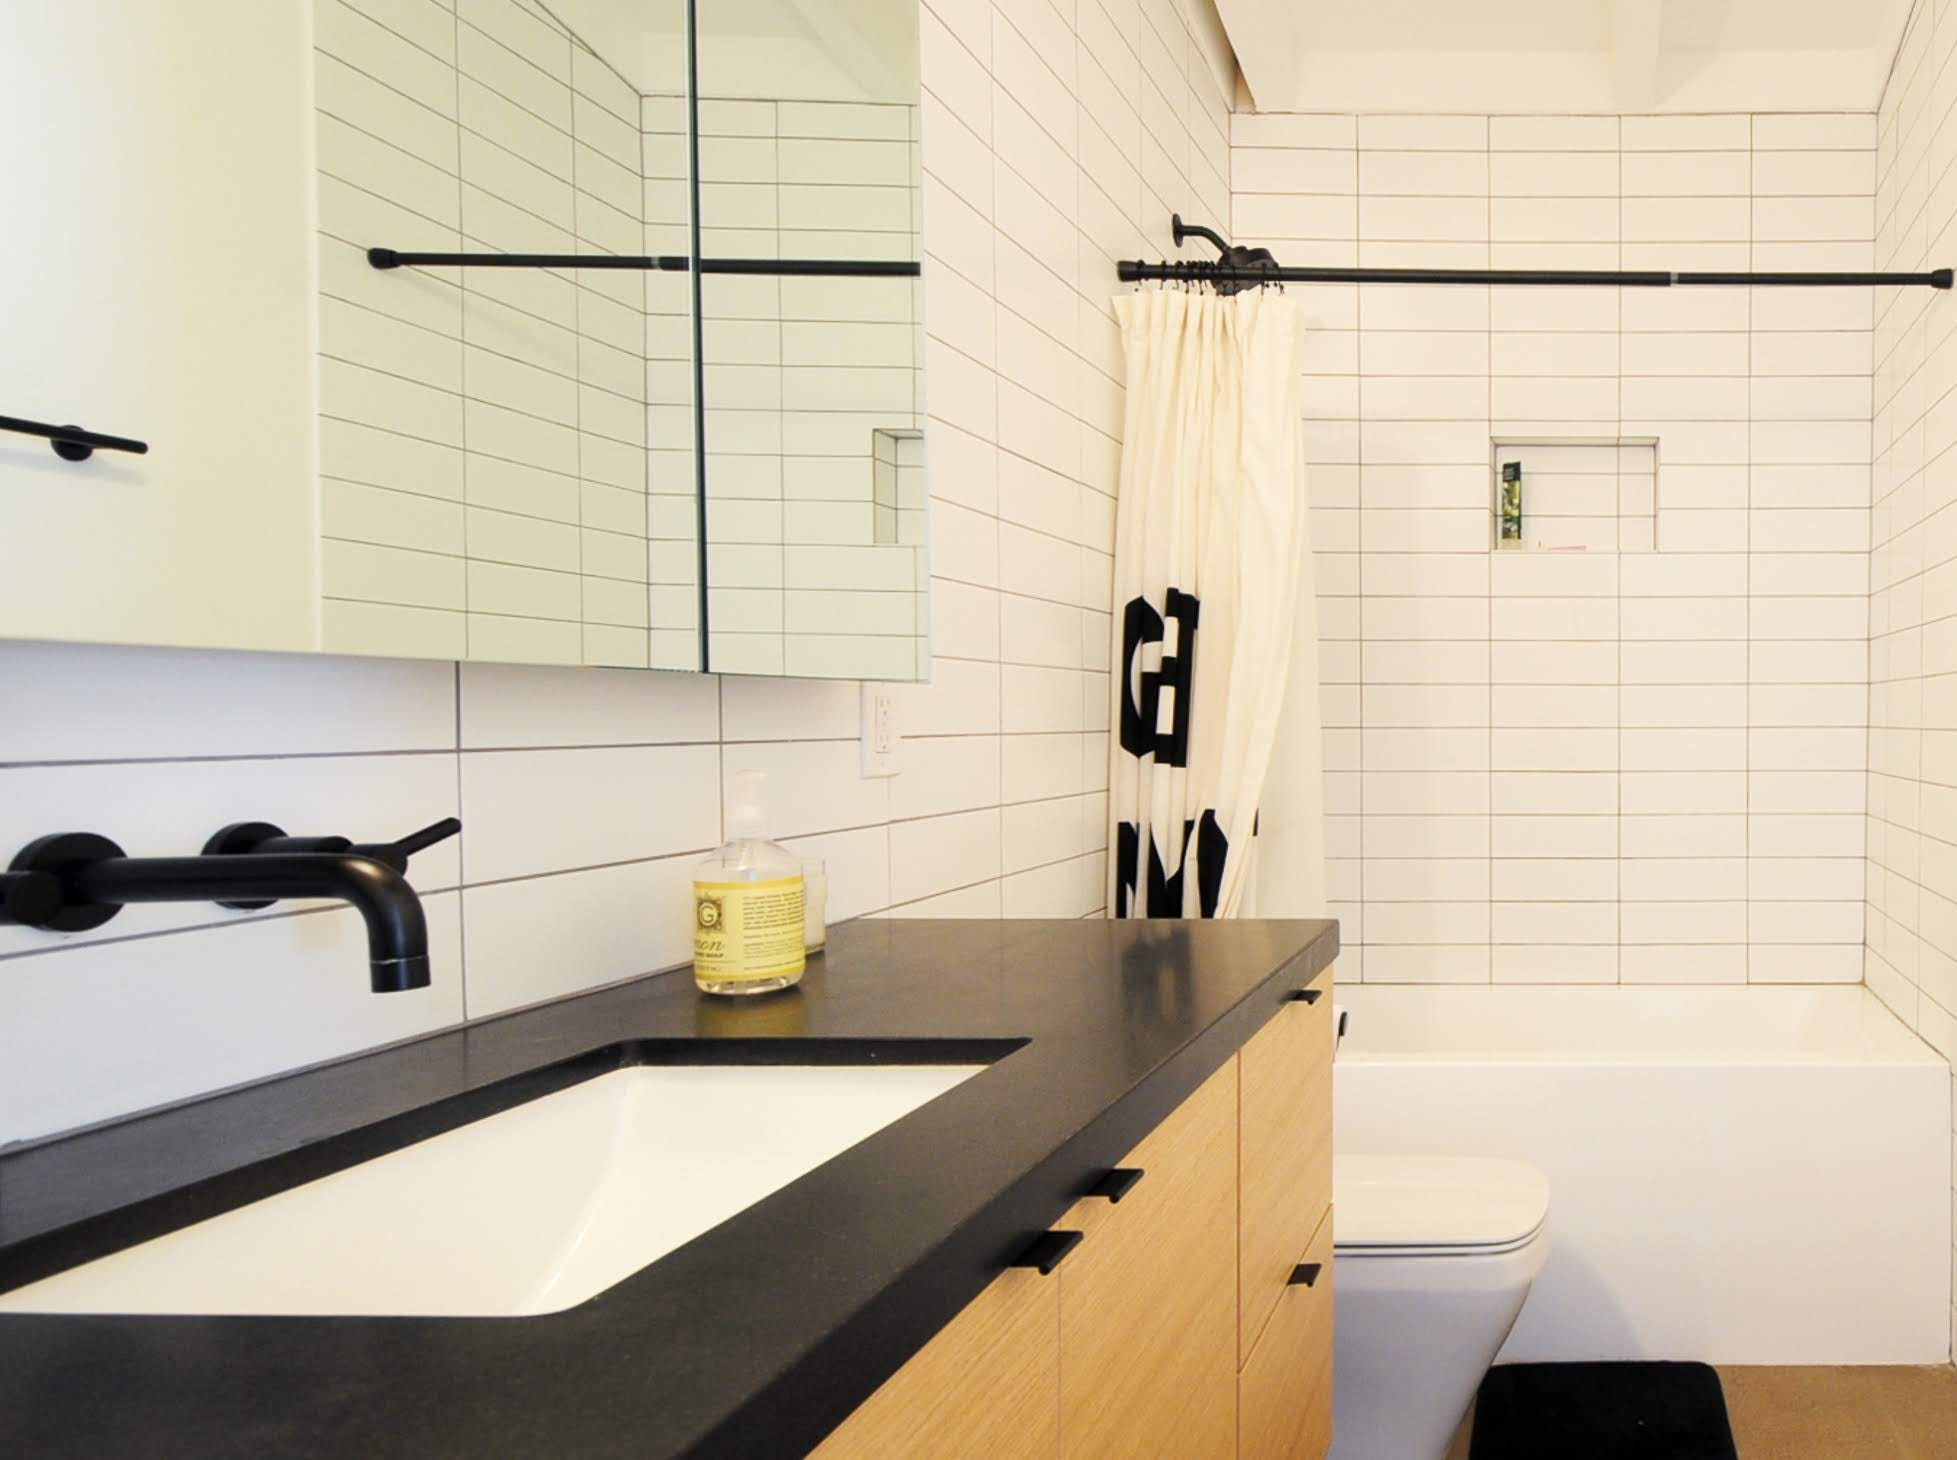 White tile mixes with a black countertop and fixtures to create a clean aesthetic in the home's second bathroom.